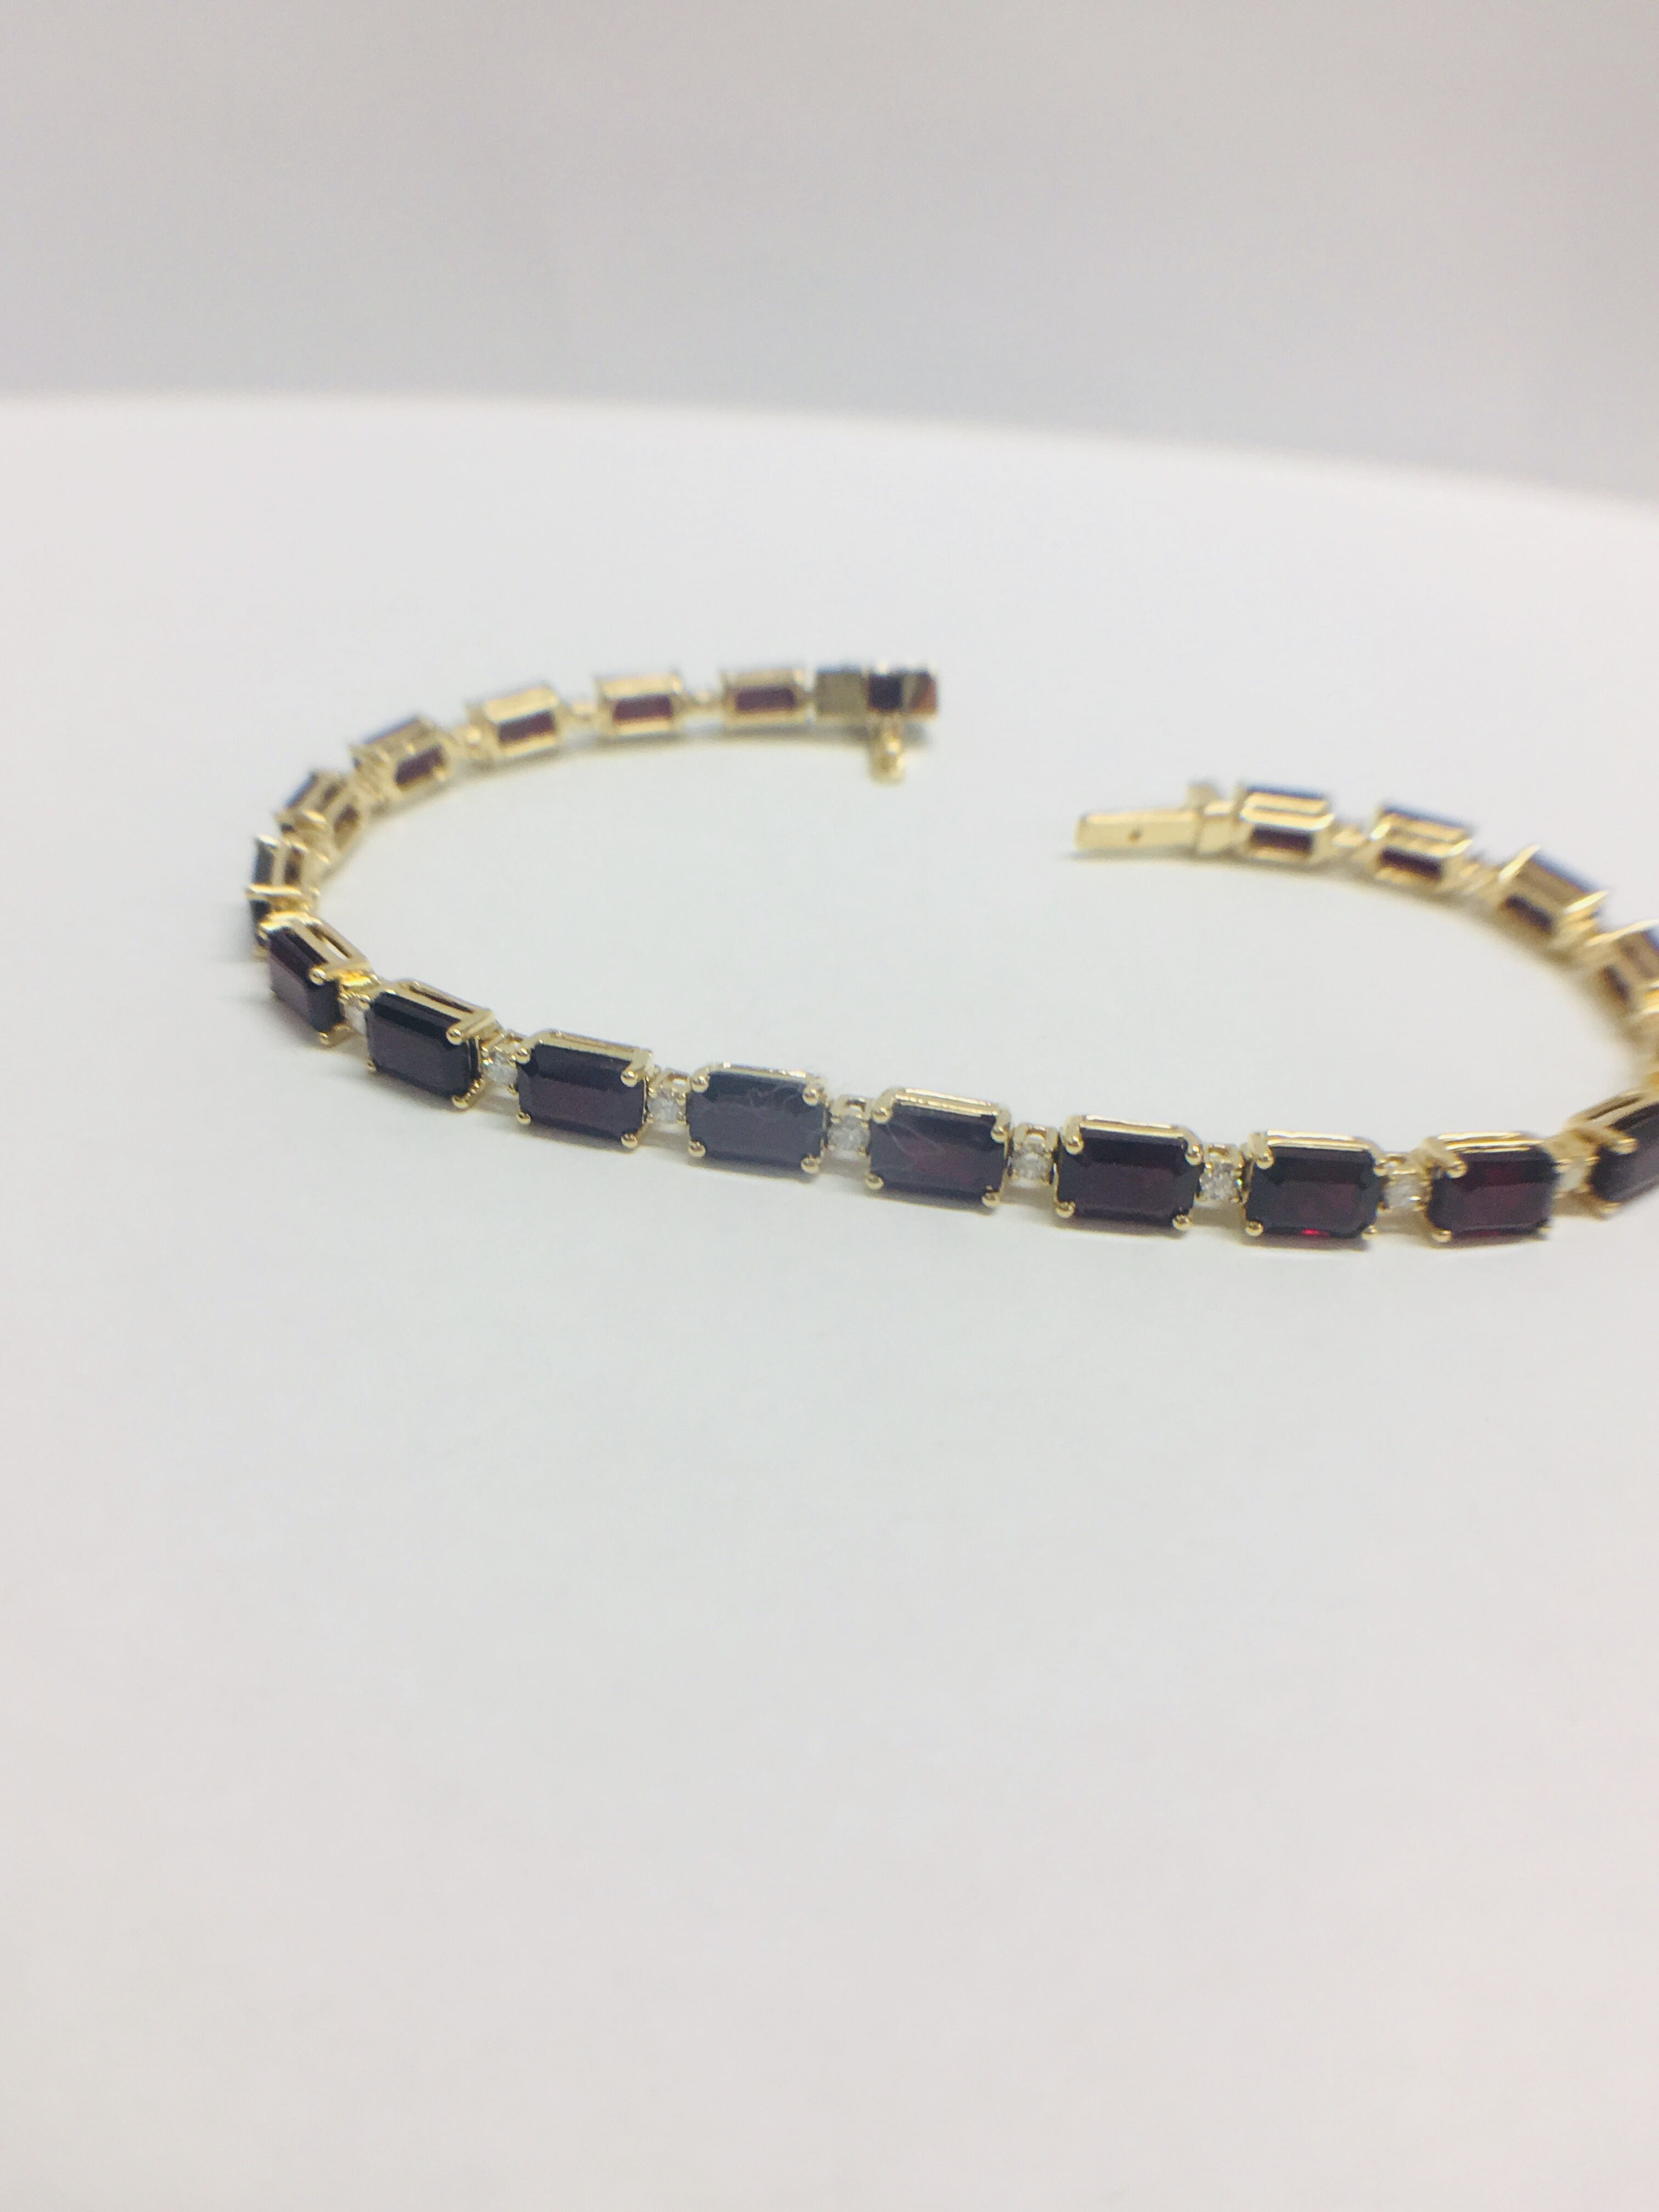 18ct yellow gold ruby and diamond tennis bracelet - Image 7 of 10